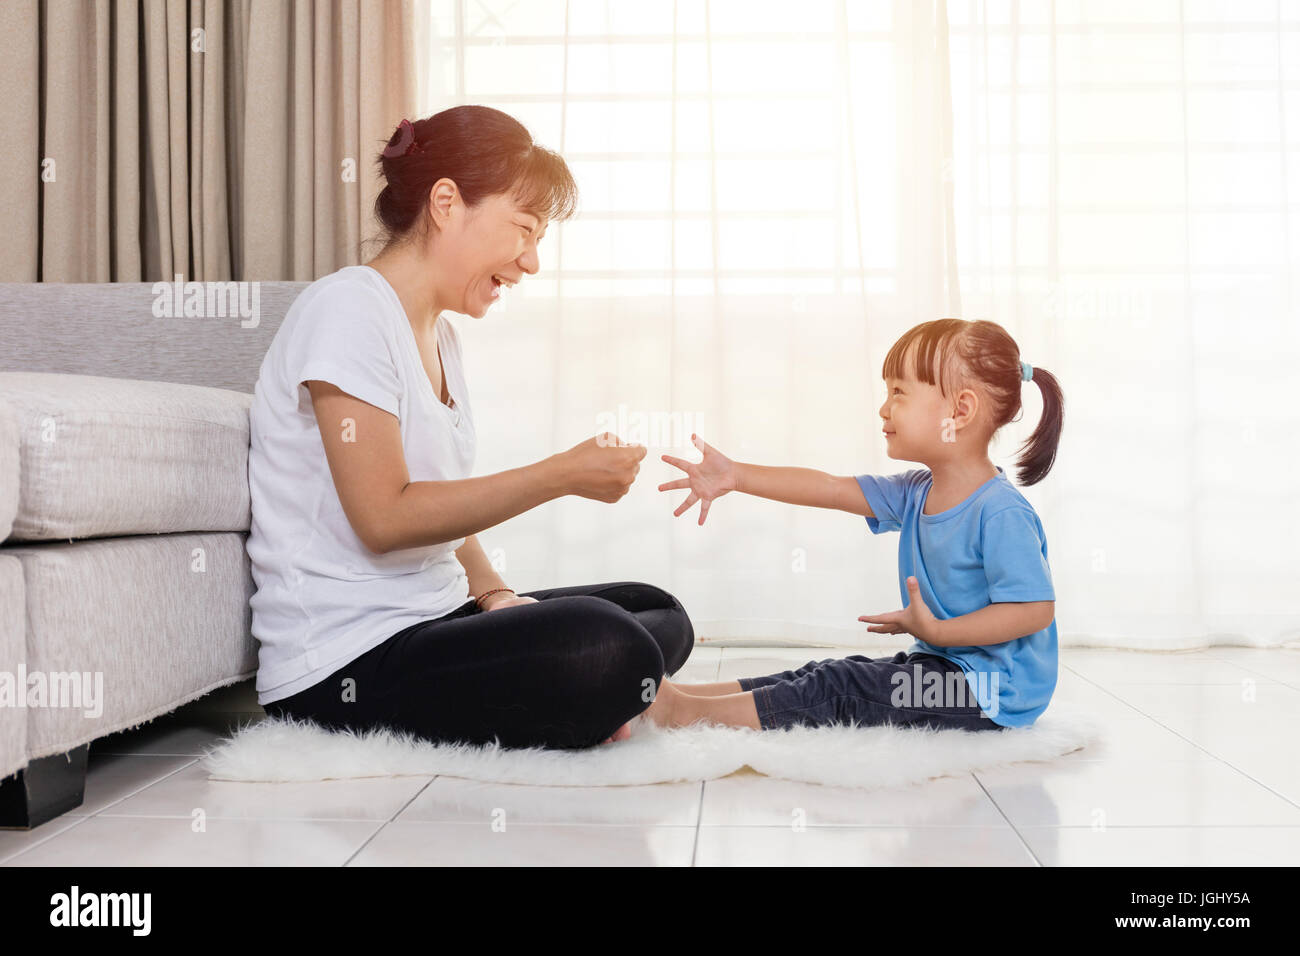 Asian Chinese mother and daughter playing rock-paper-scissors in the living room at home. - Stock Image